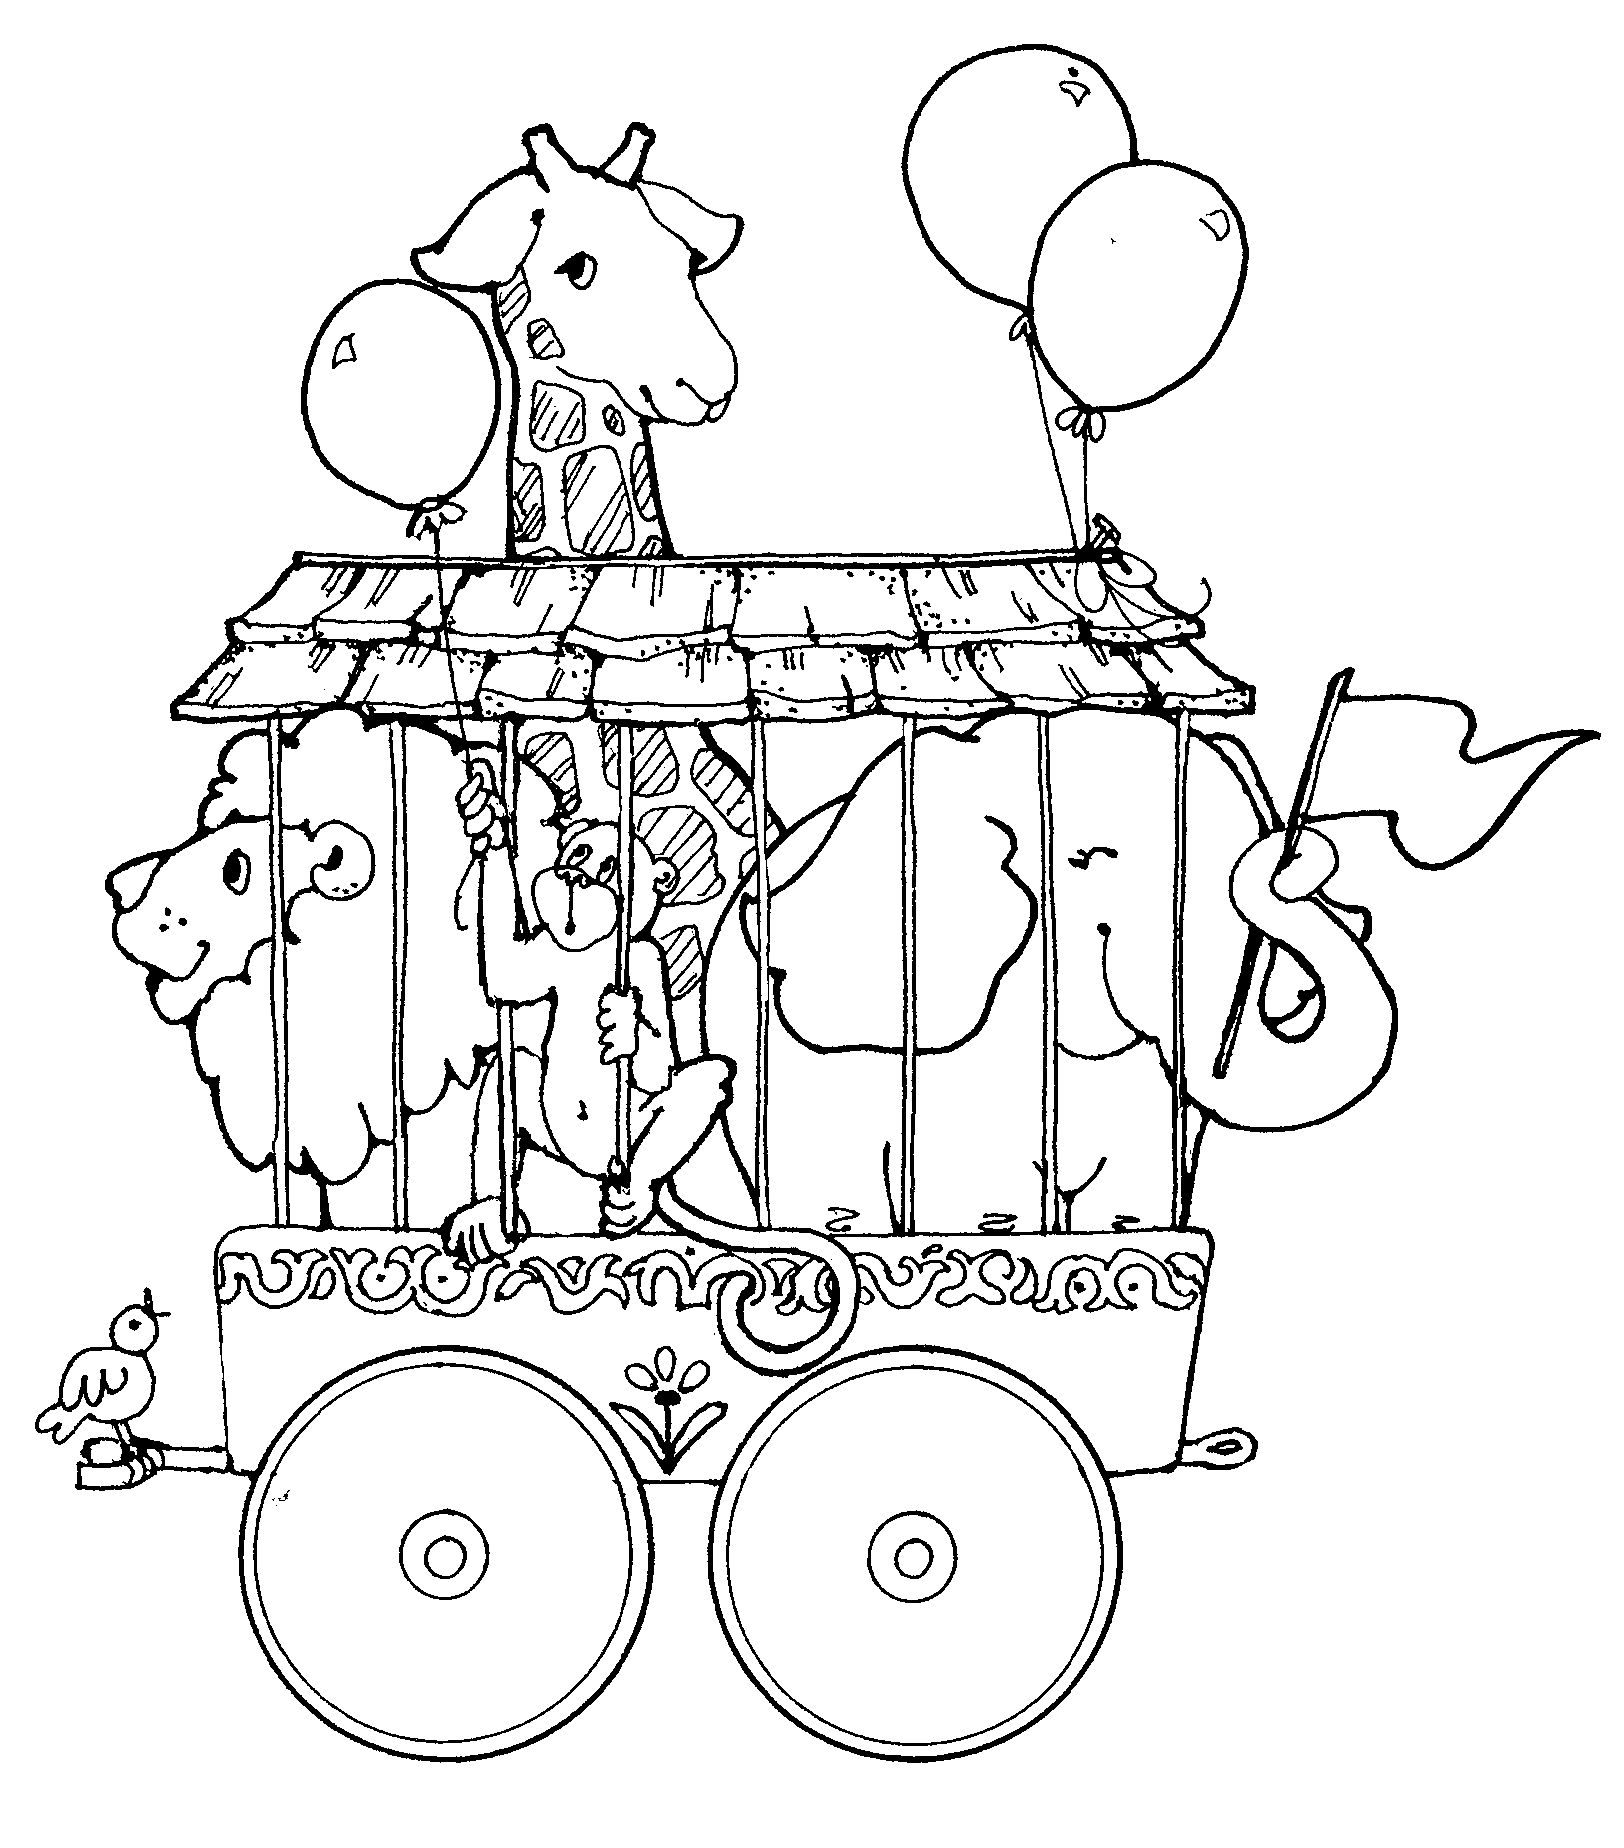 Circus train with giraffe, lion and elephant coloring page | Train ...